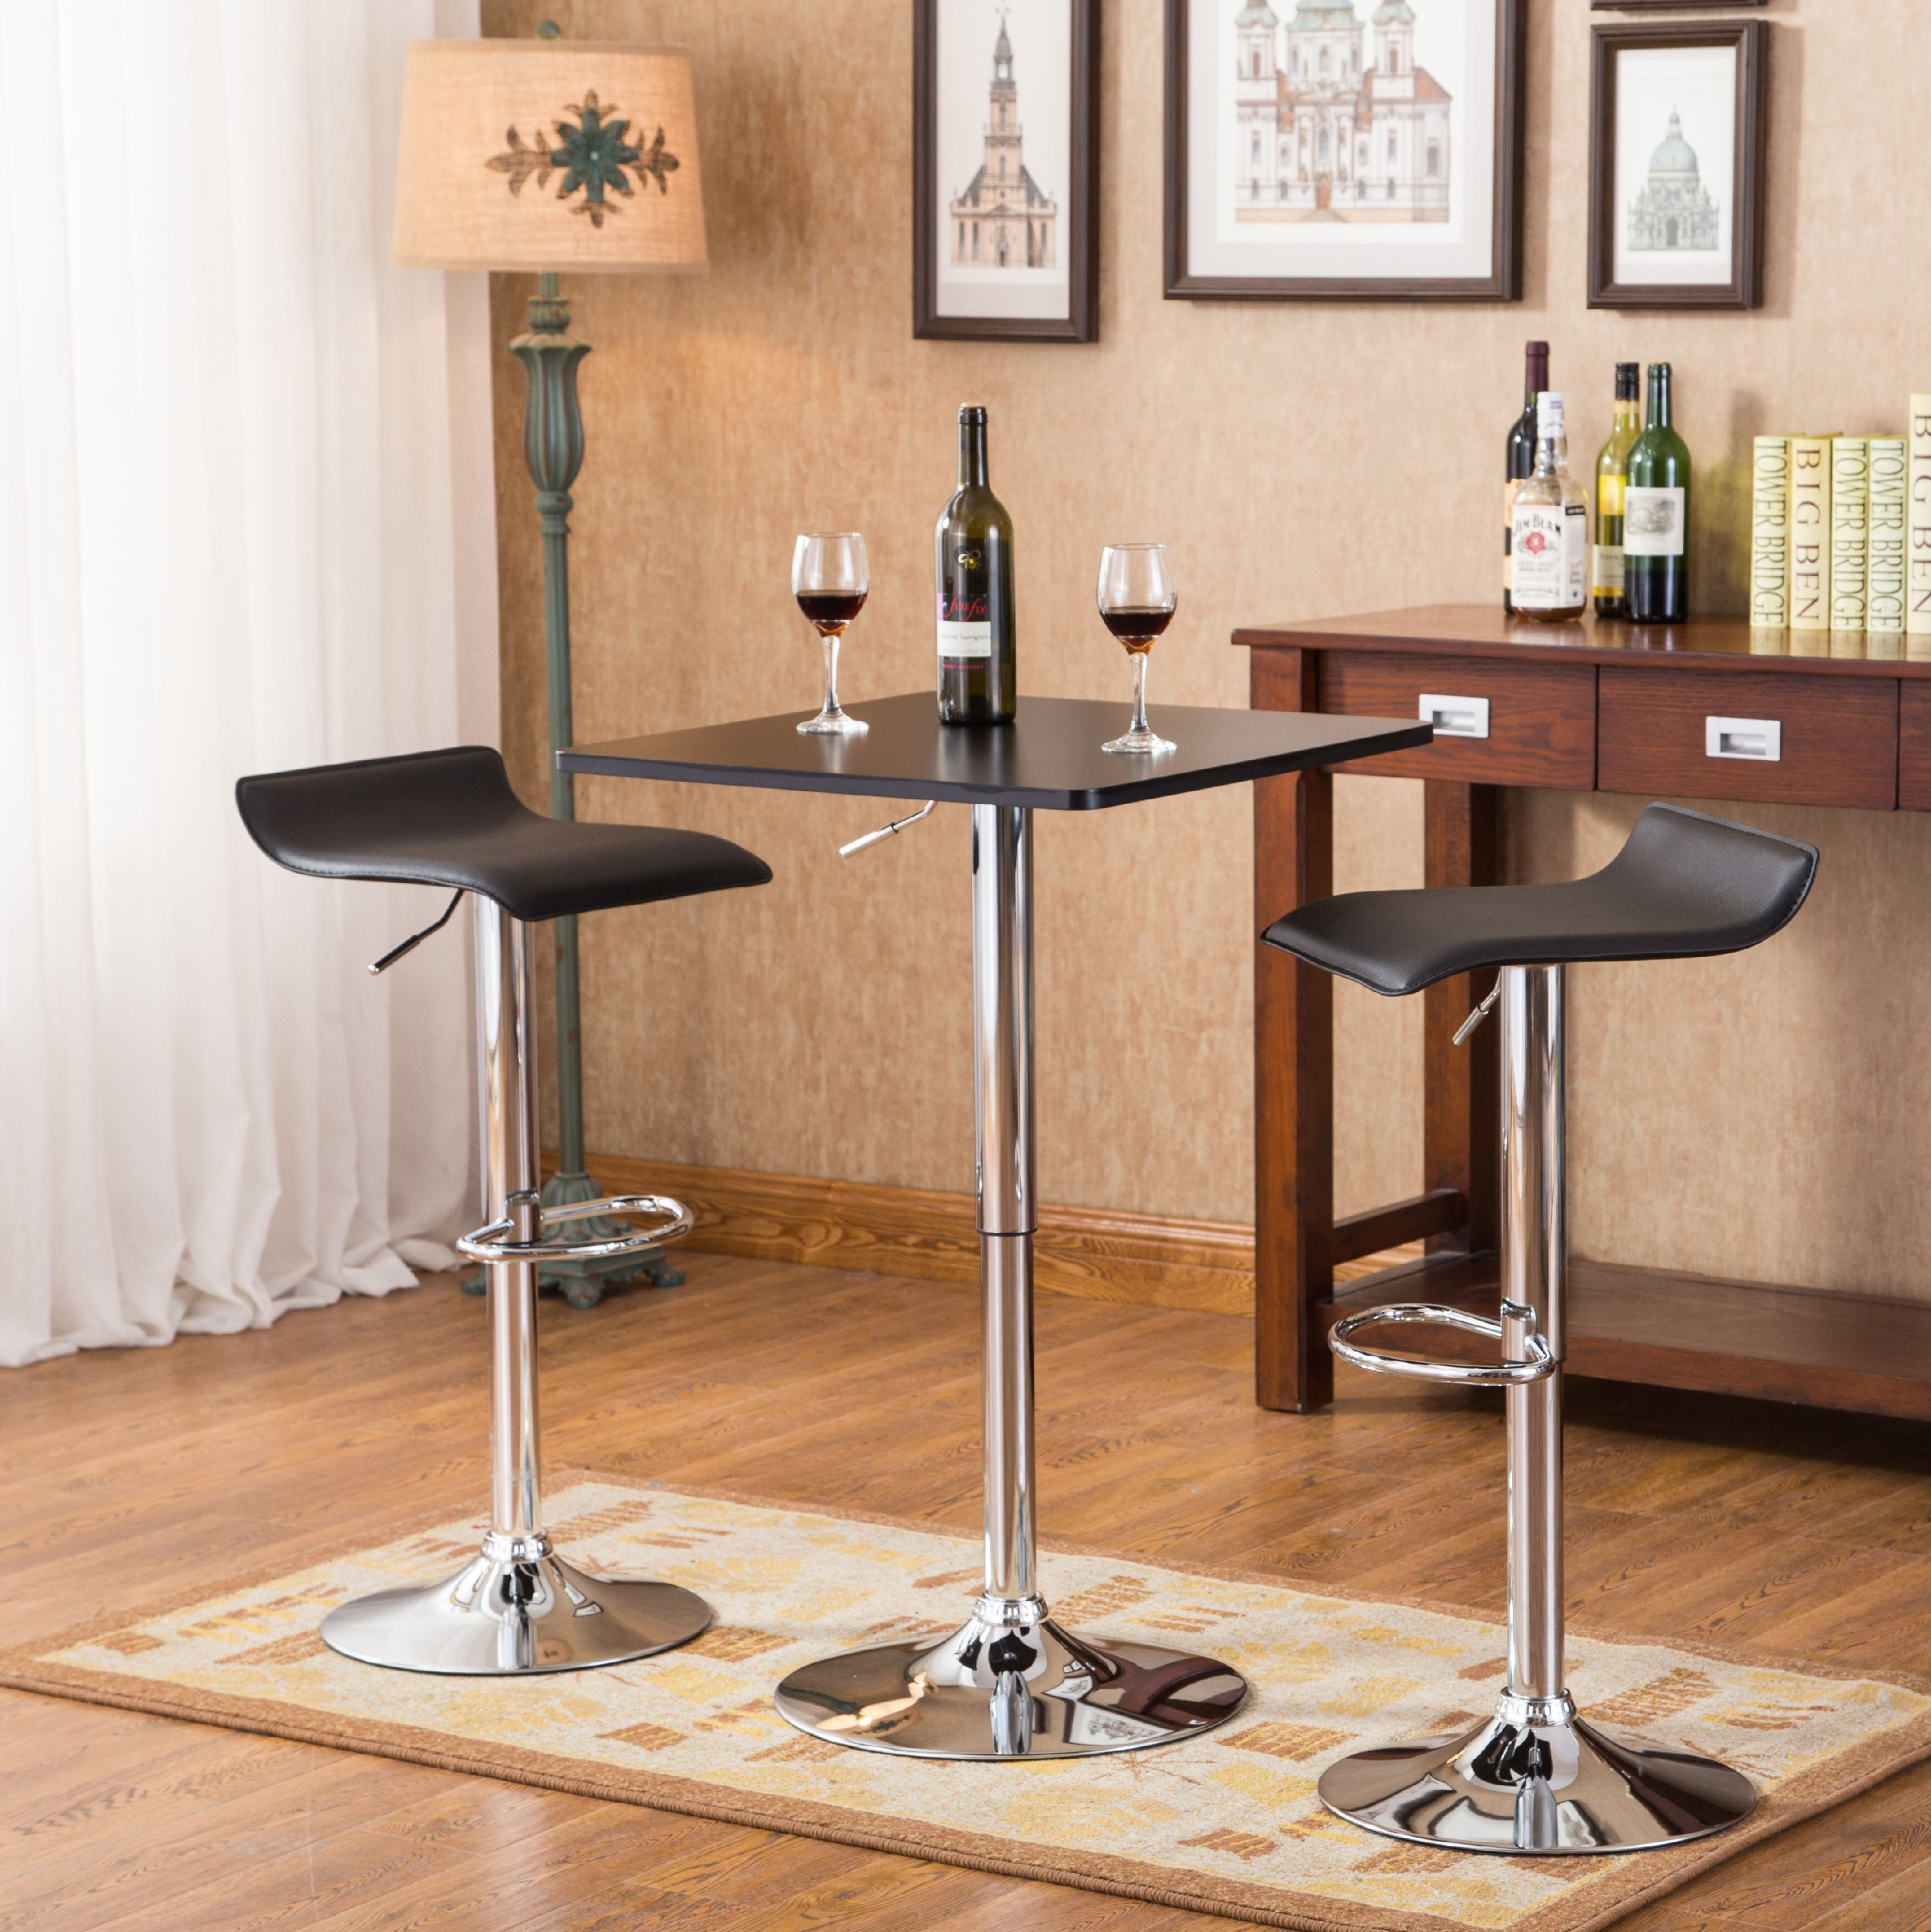 Roundhill Furniture Baxton Black Square Top Adjustable Height Wood & Chrome Metal bar Table & 2 Black Chrome Air Lift Adjustable Swivel Stools Set